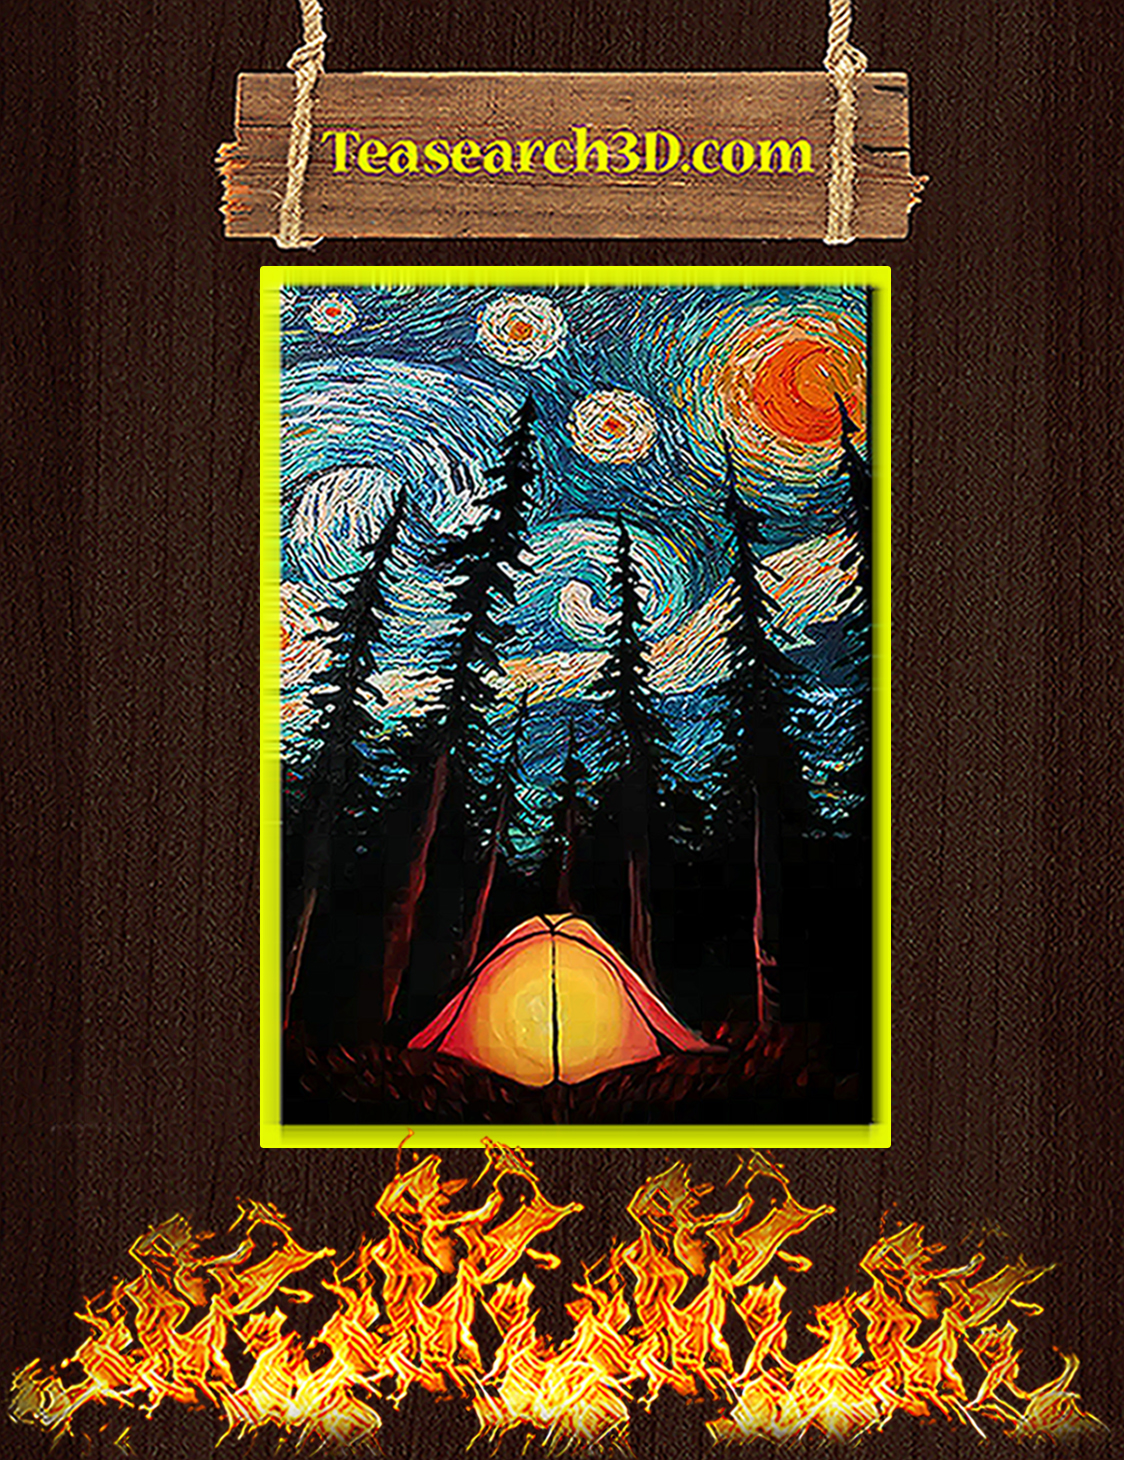 Camping starry night van gogh poster A3